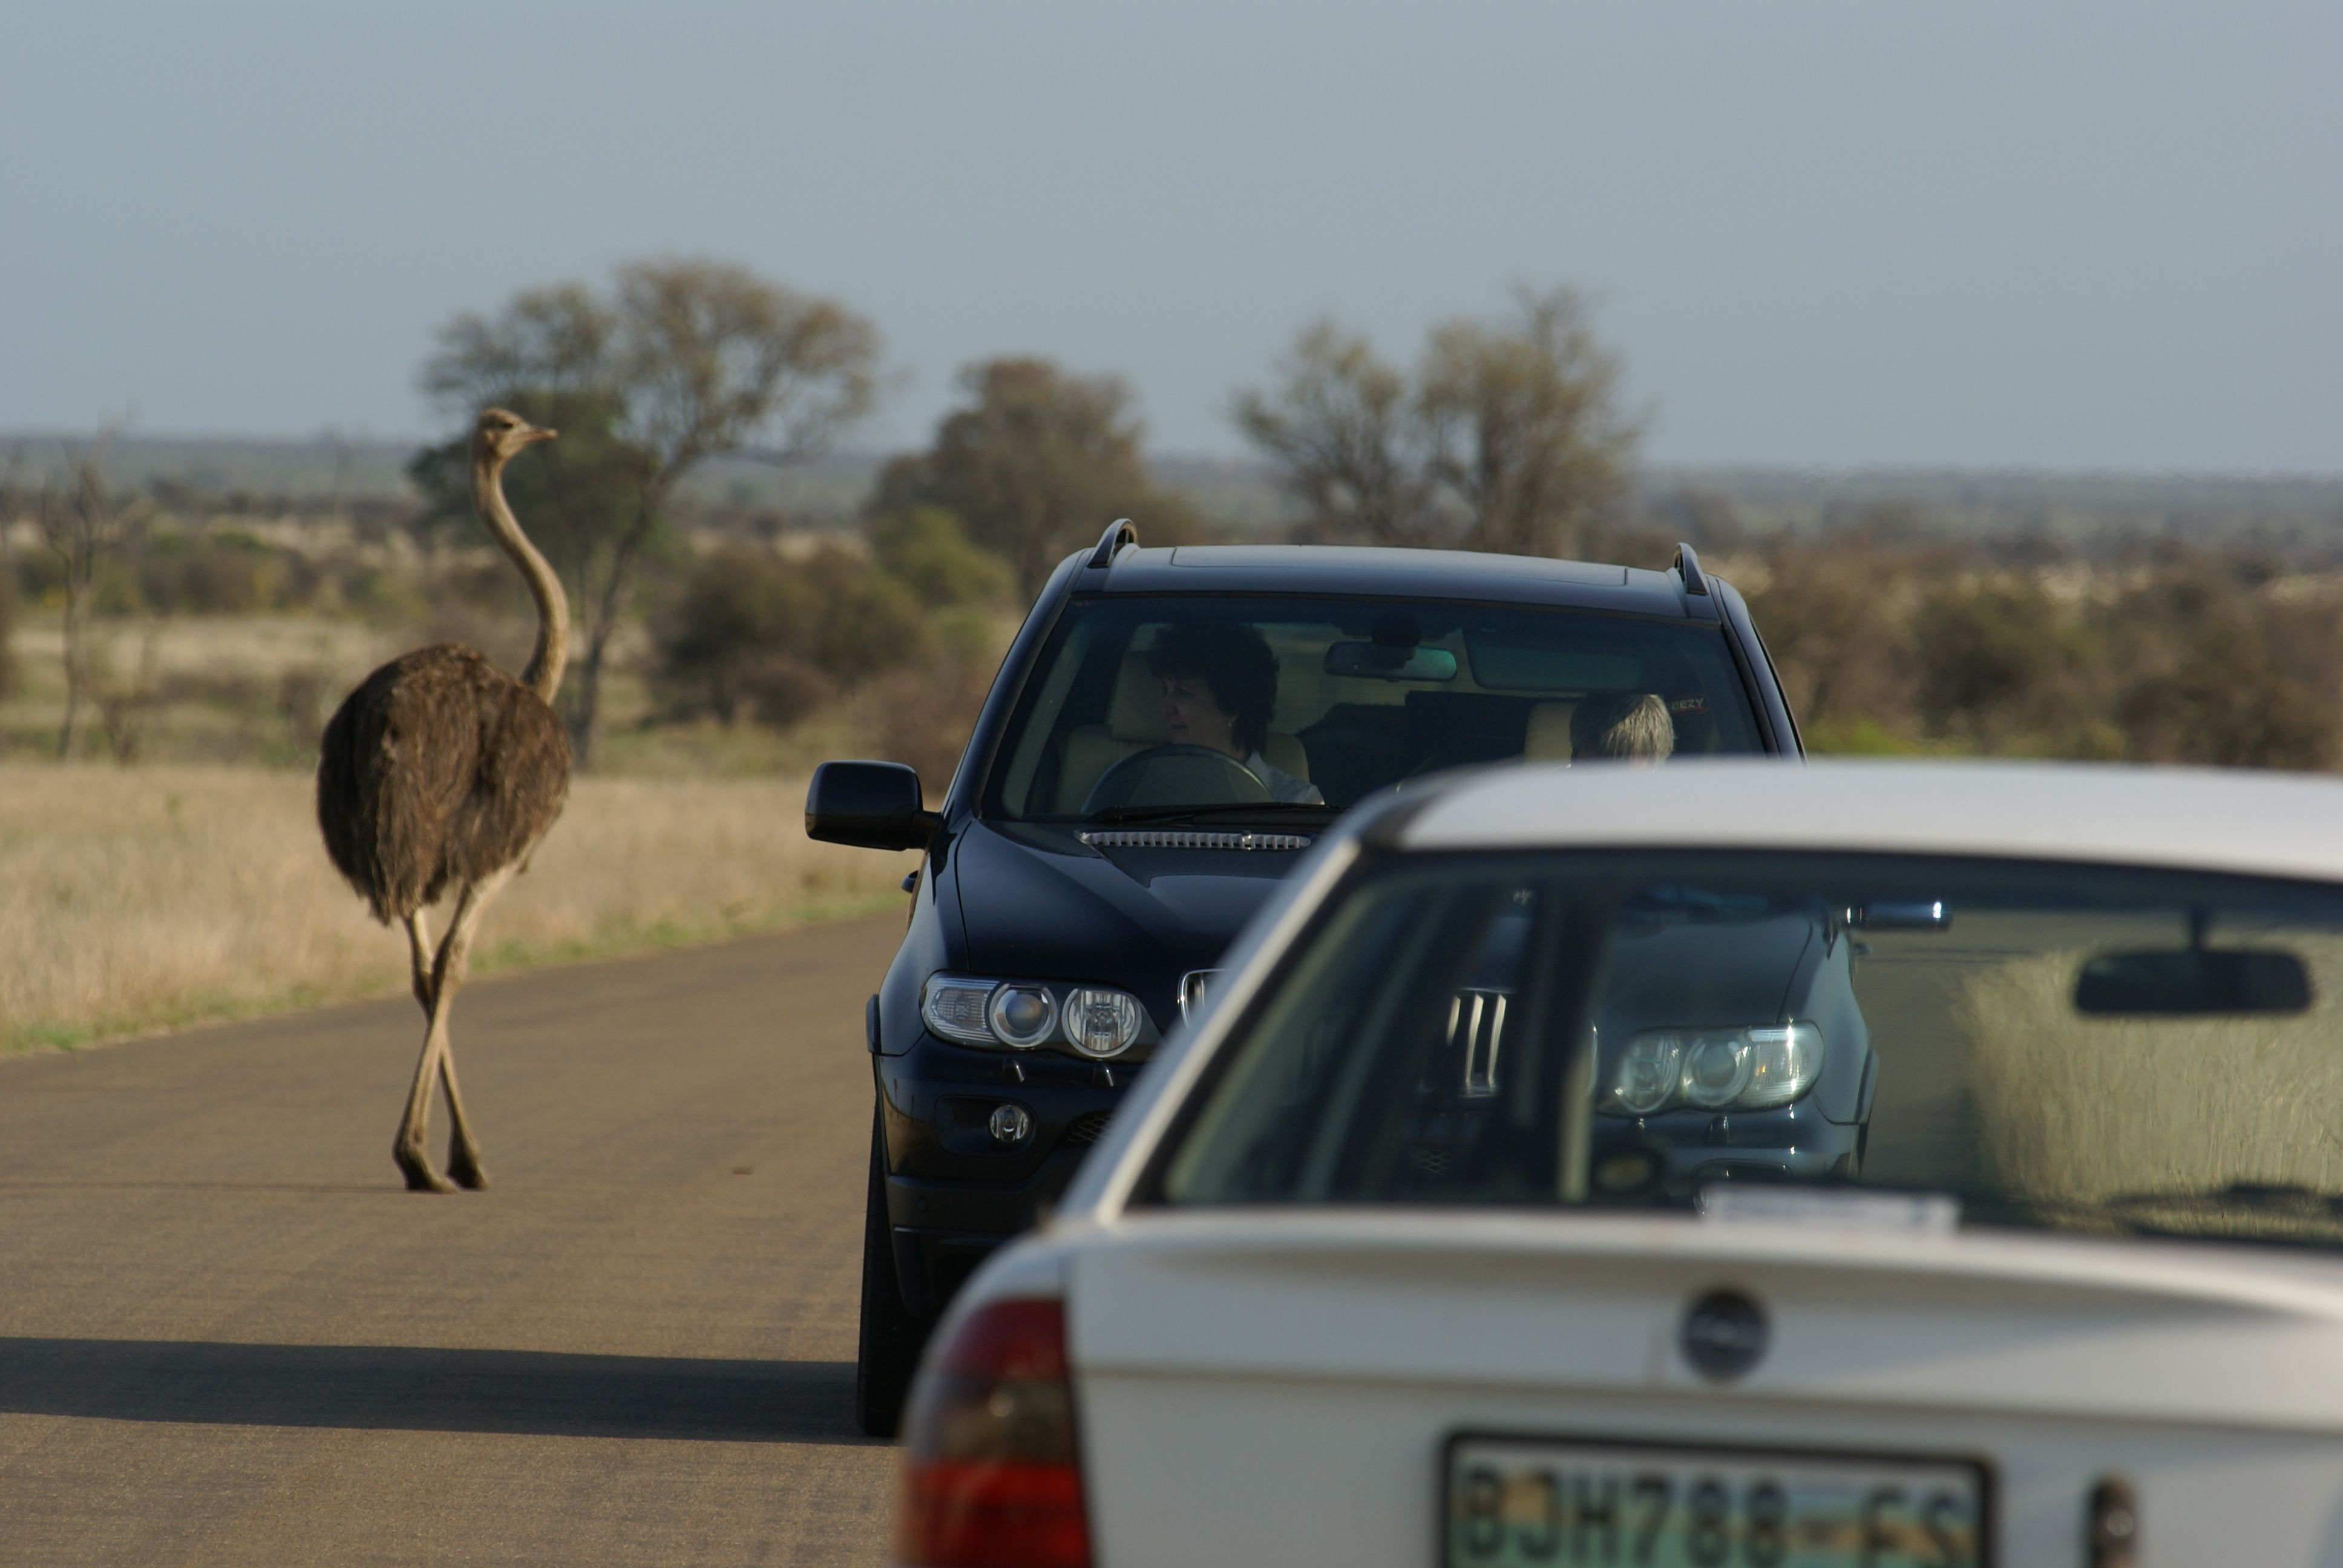 Oct. 12, 2007, Kruger National Park, South Africa. A happy mother orchid, walking through the cars.